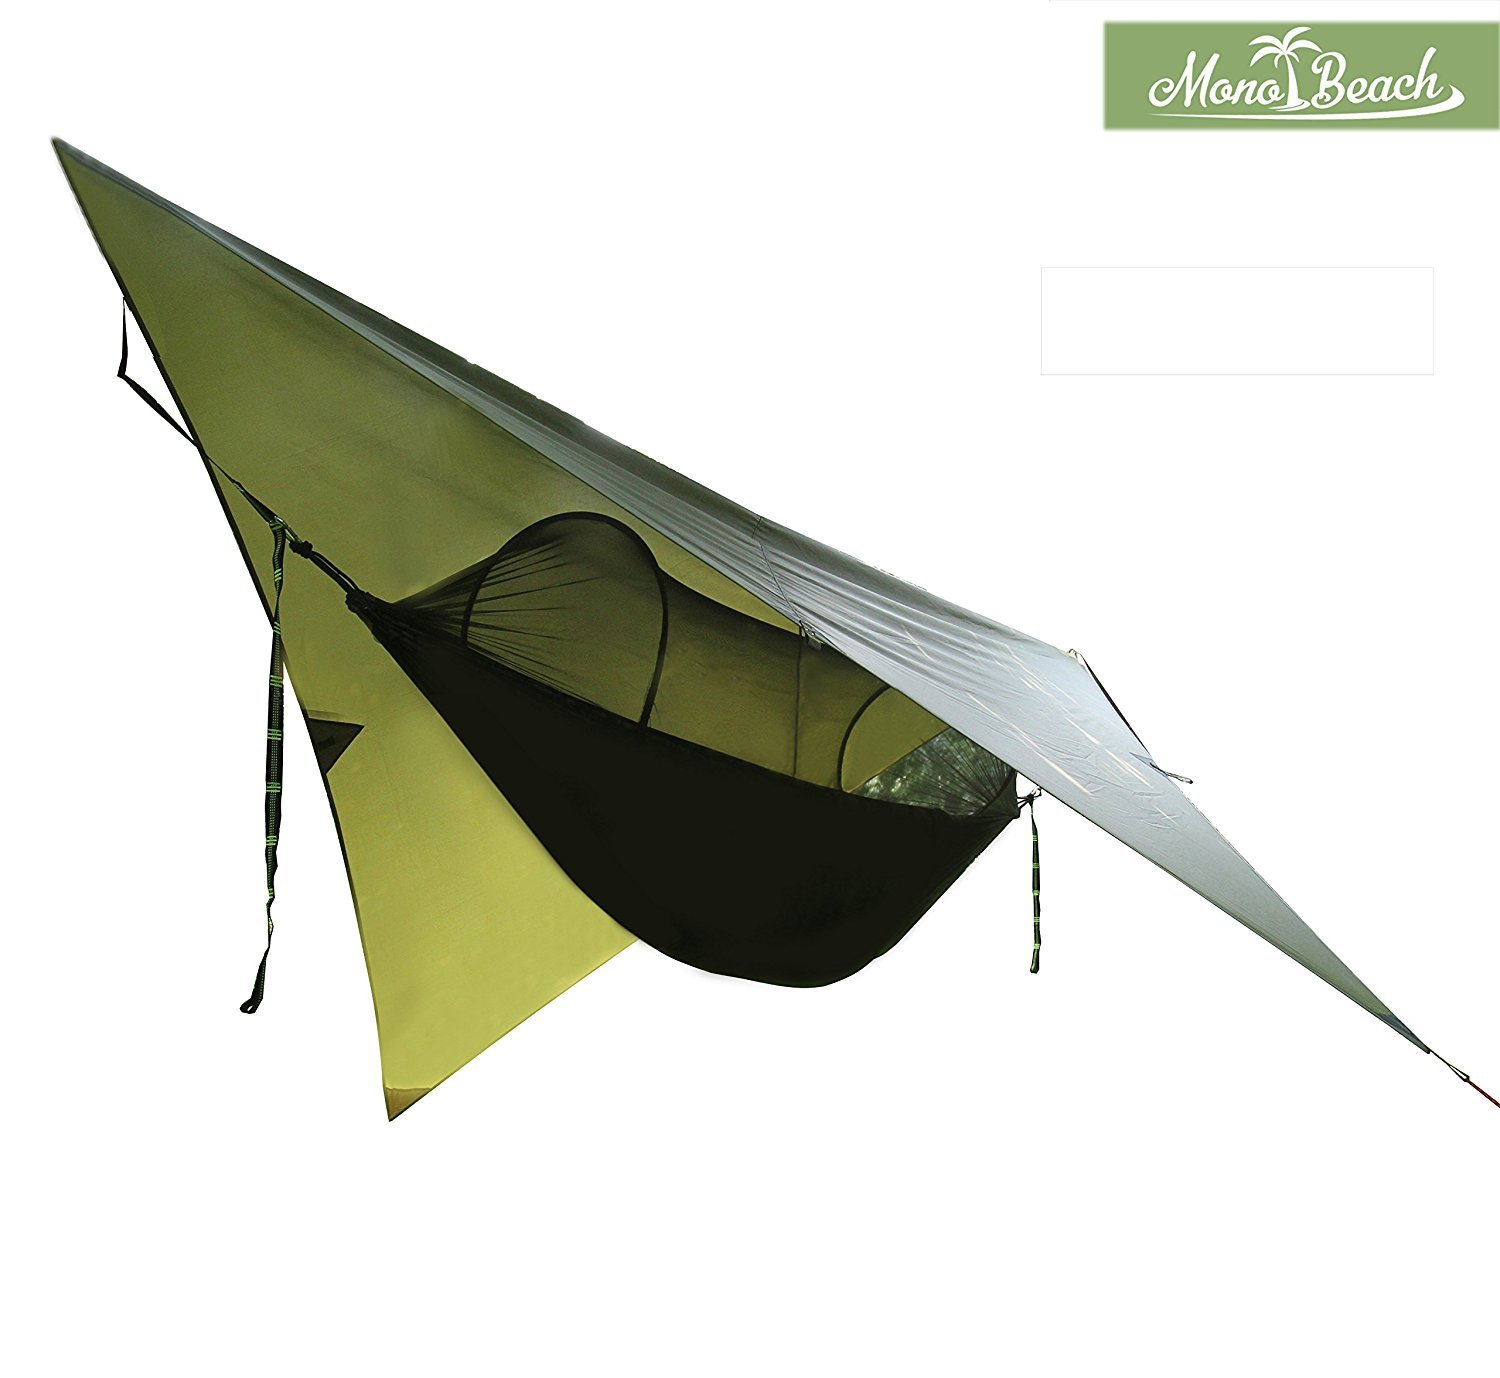 ... Hammock Tent with Mosquito Net for C&ing Portable Hammock ...  sc 1 st  Monobeach & Hammock Tent with Mosquito Net for Camping Portable Hammock Kit ...